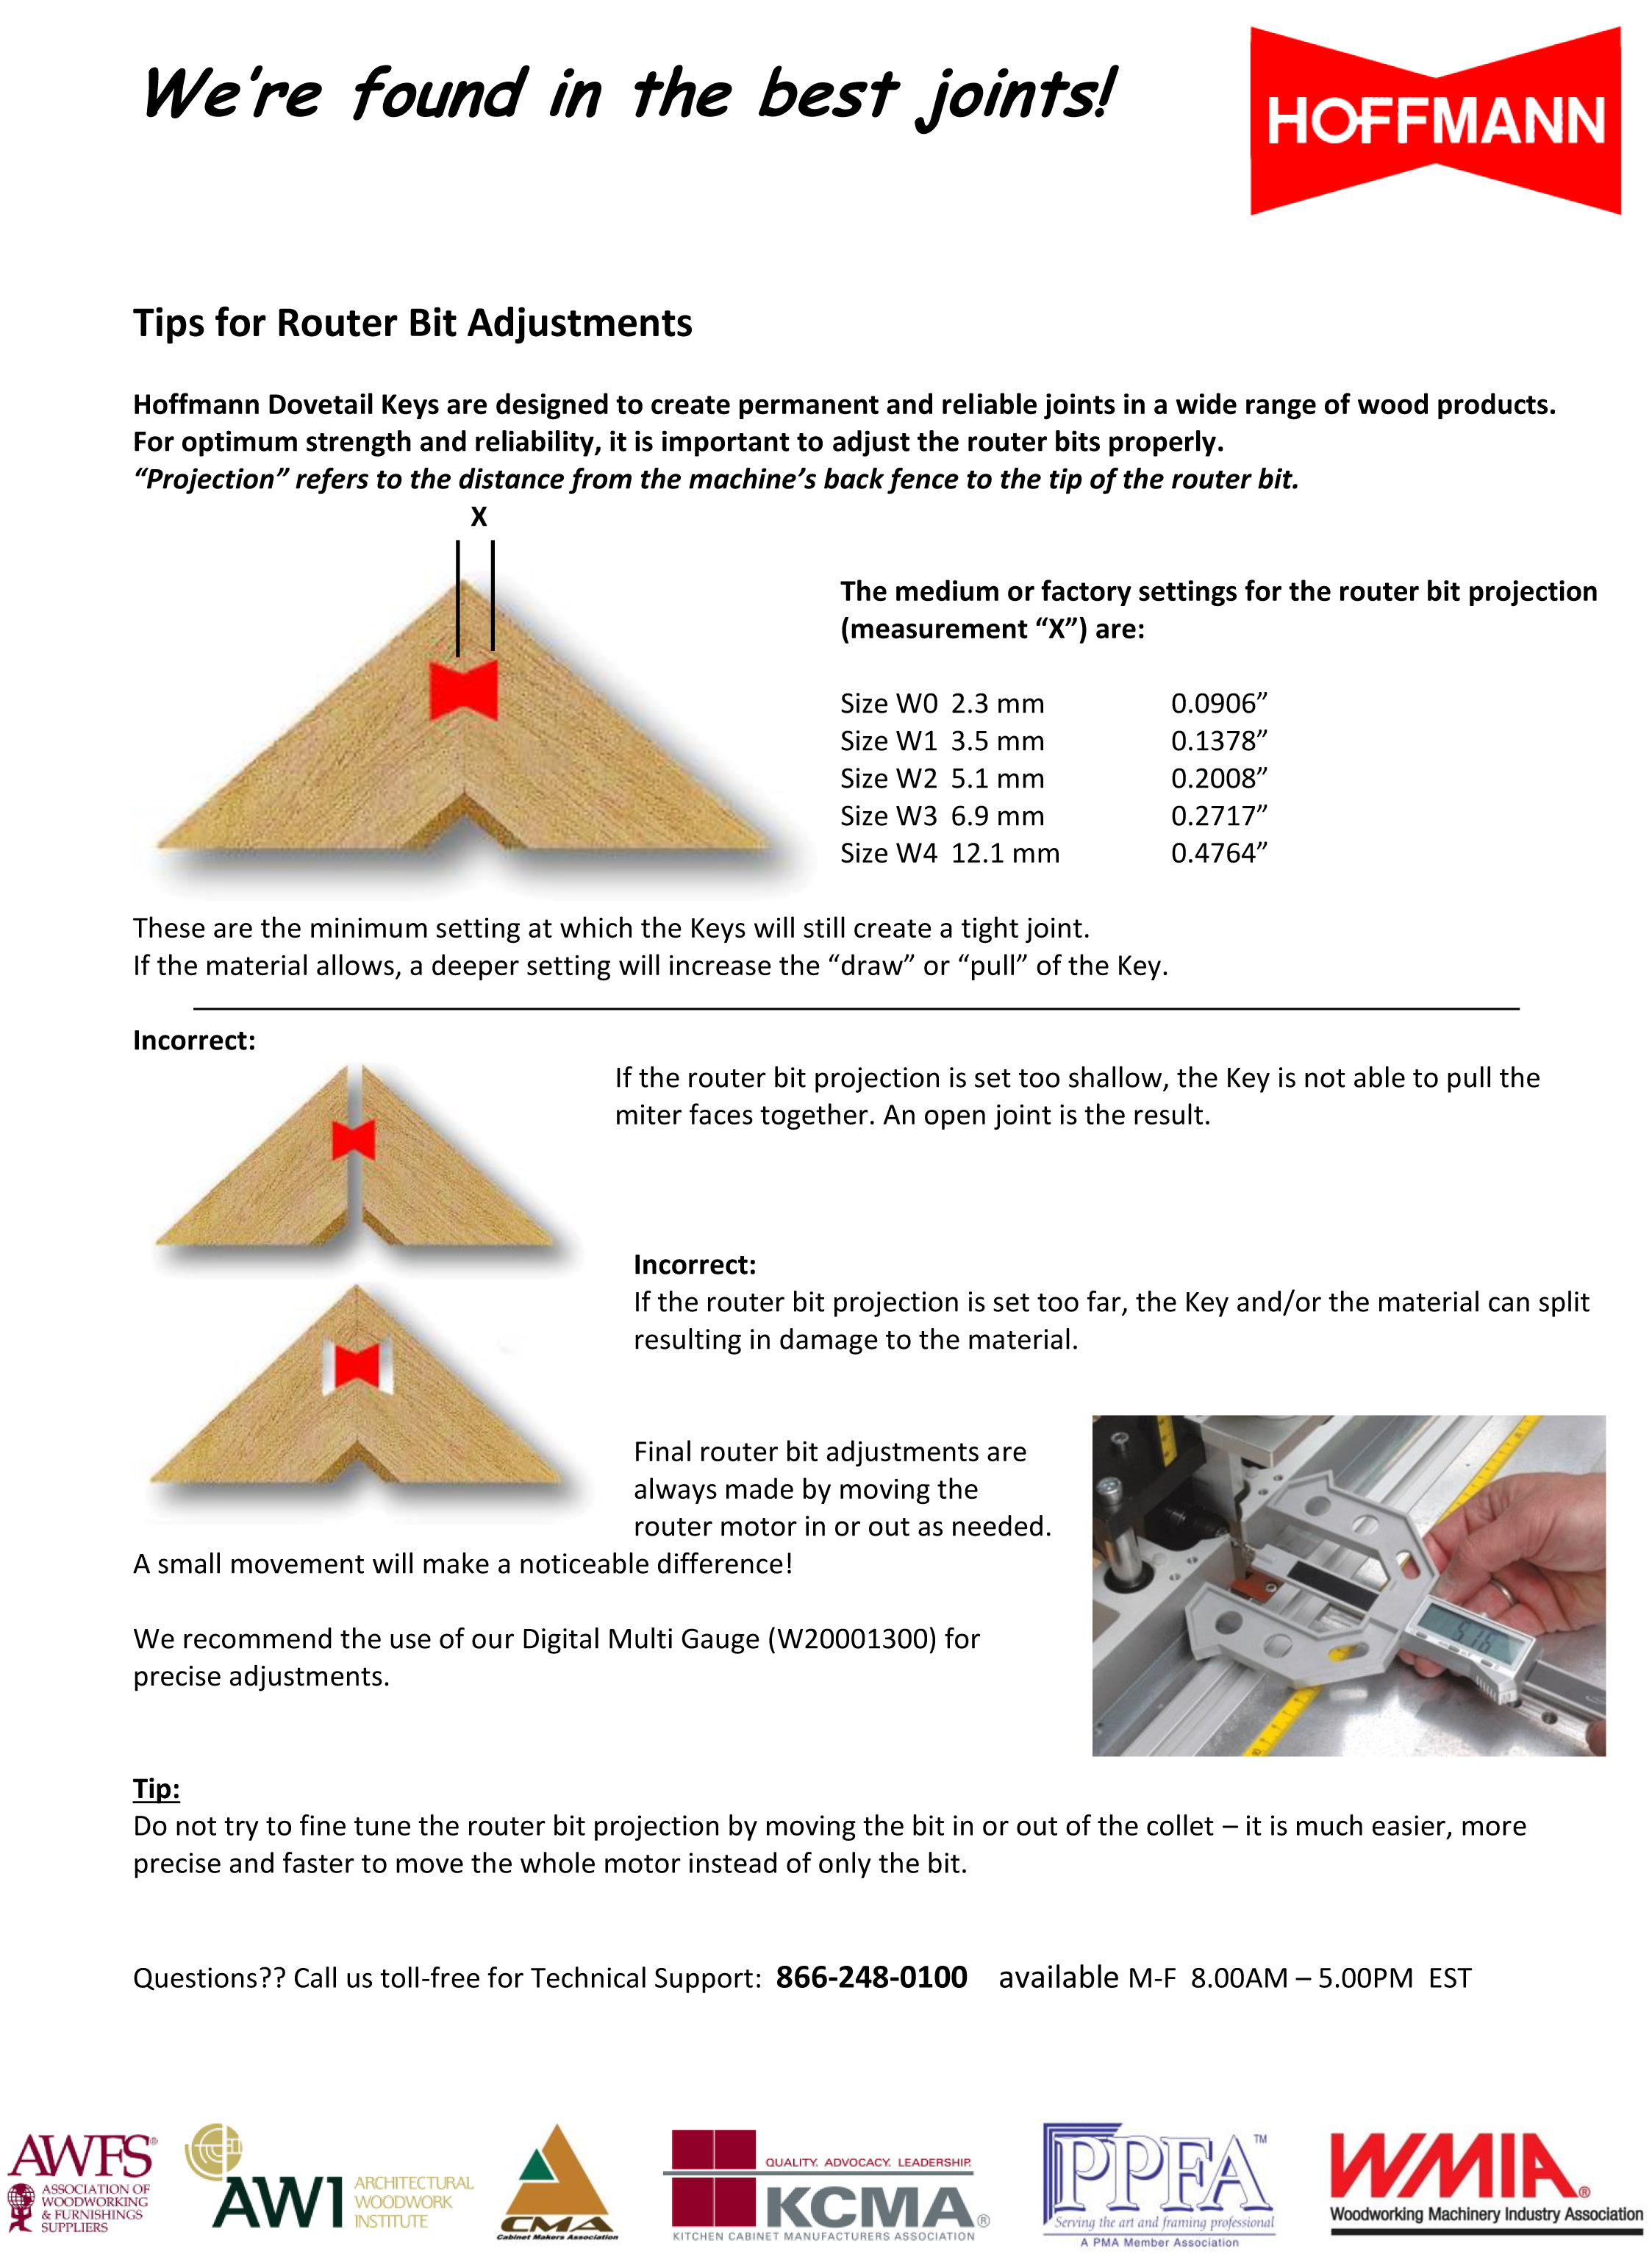 tips-for-router-bit-adjustments.jpg